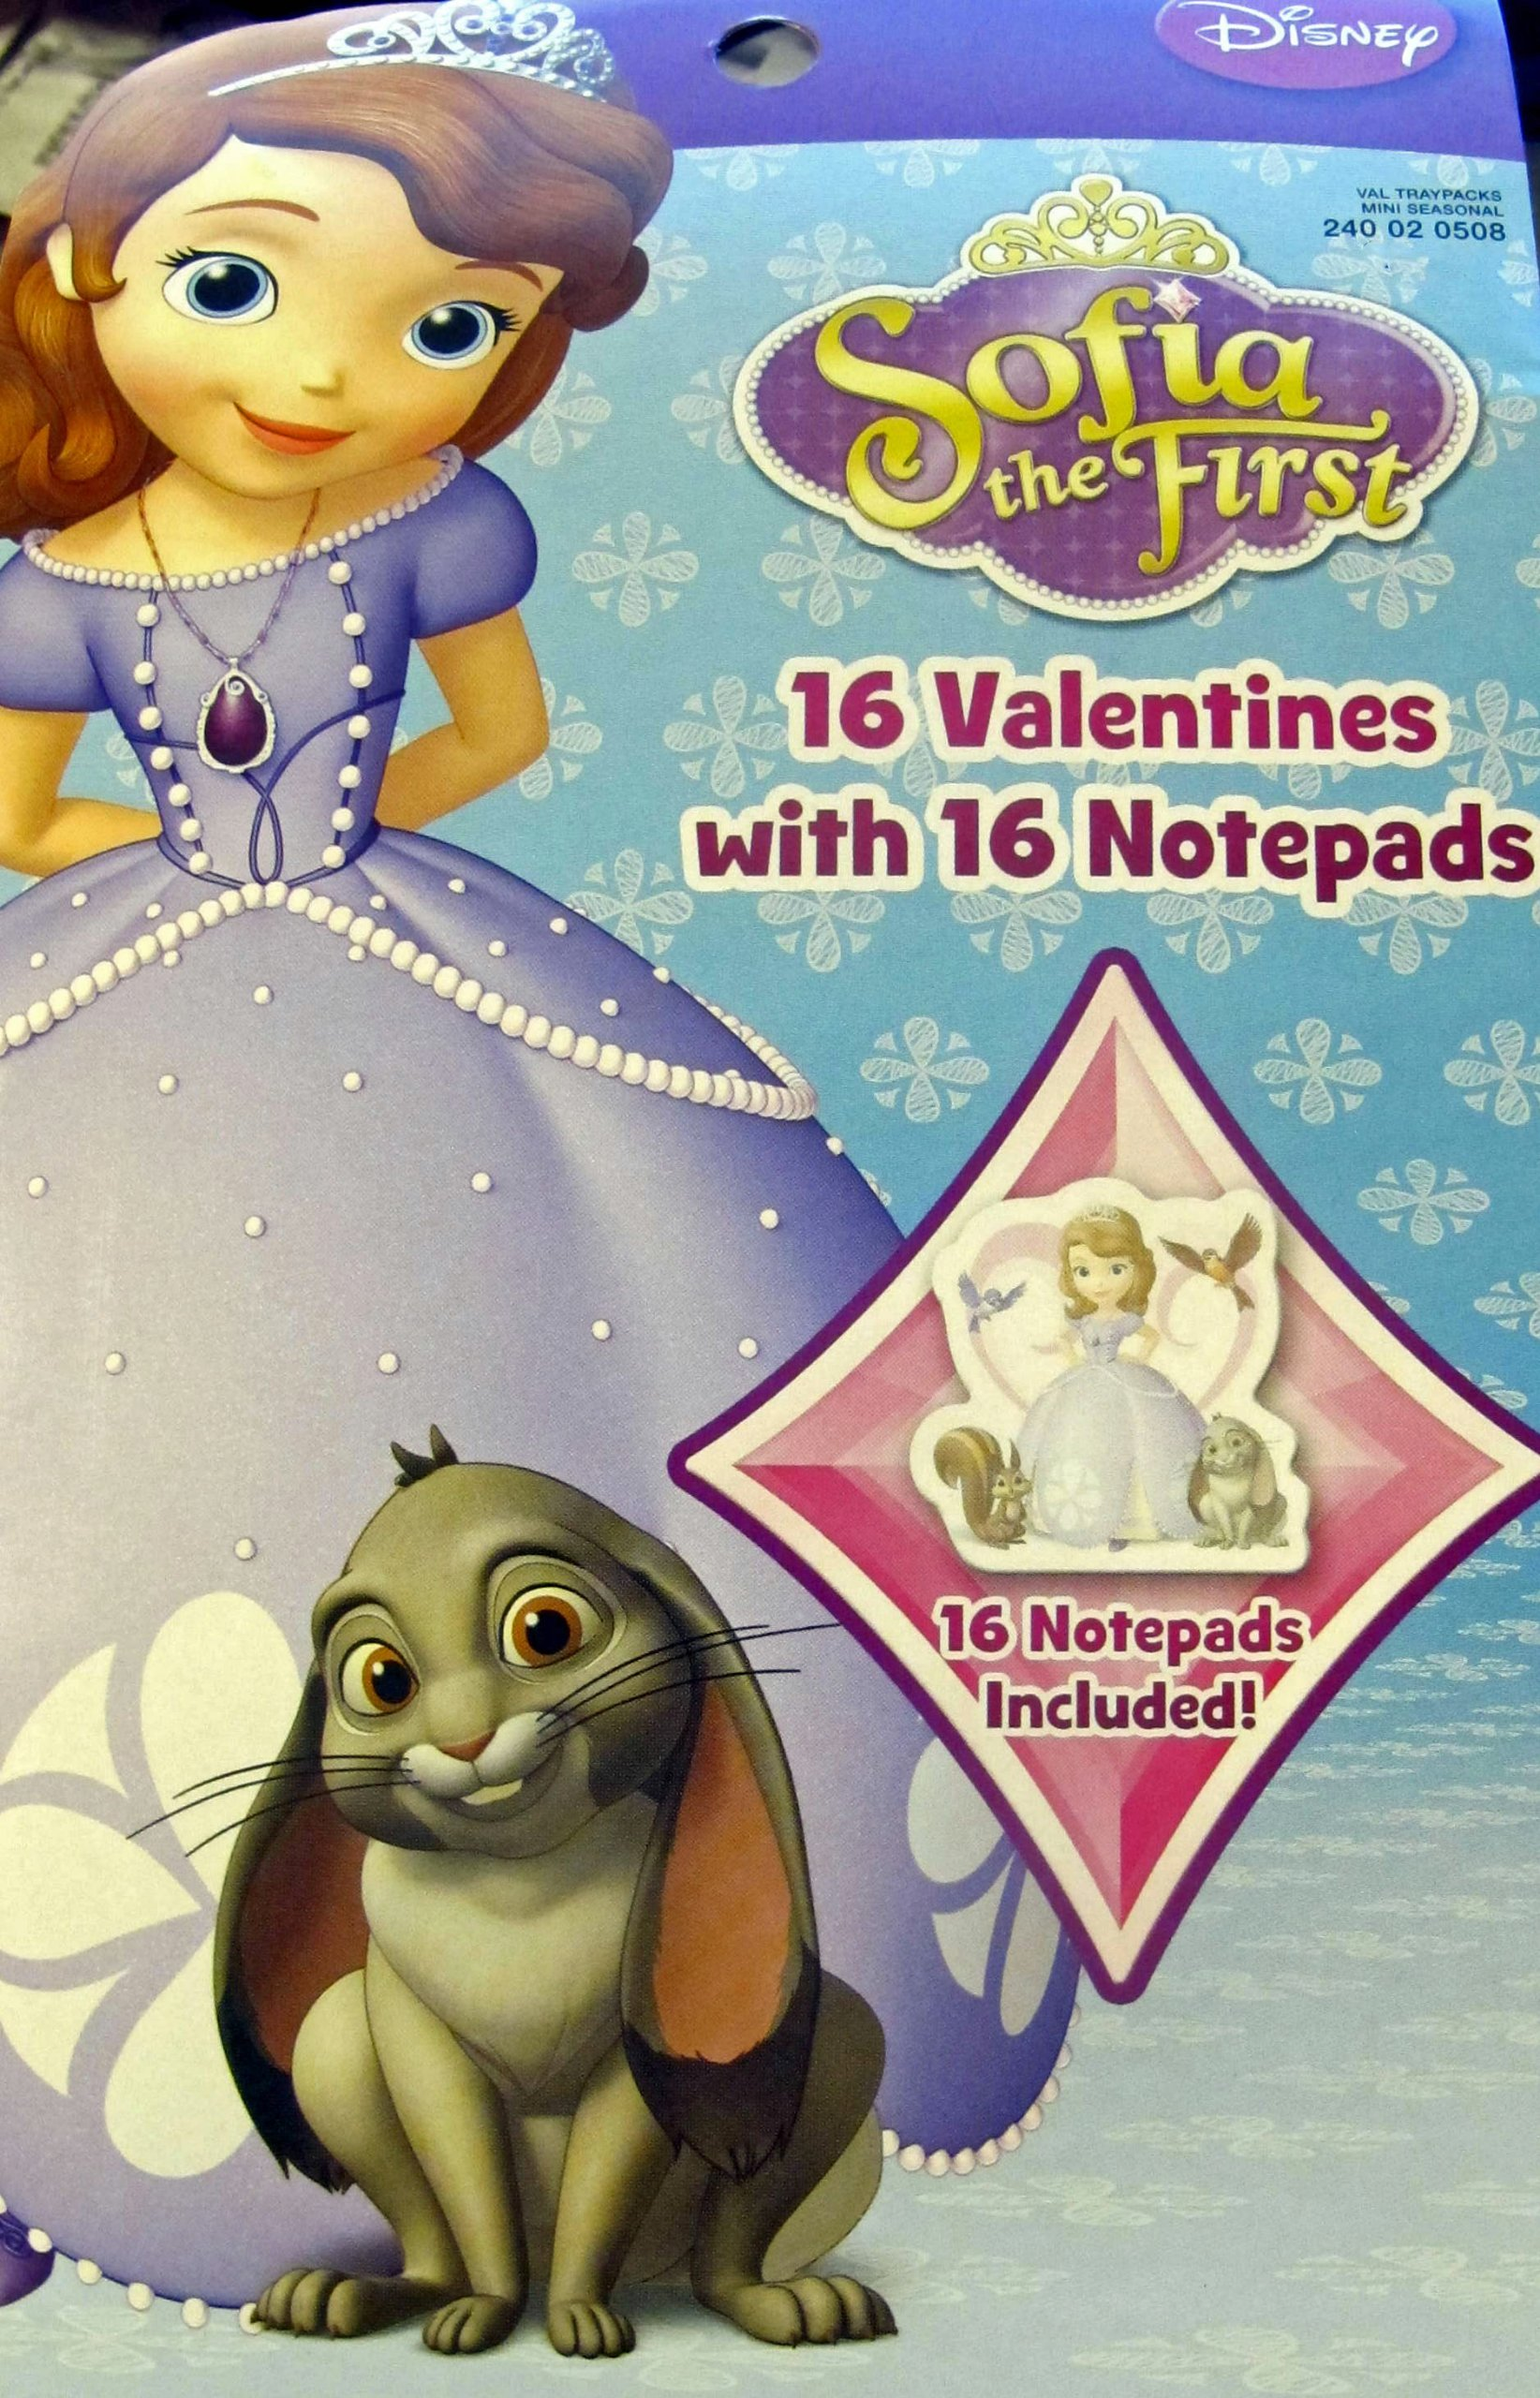 16 Sofia the First Valentines with 16 Notepads by Disney (Image #1)